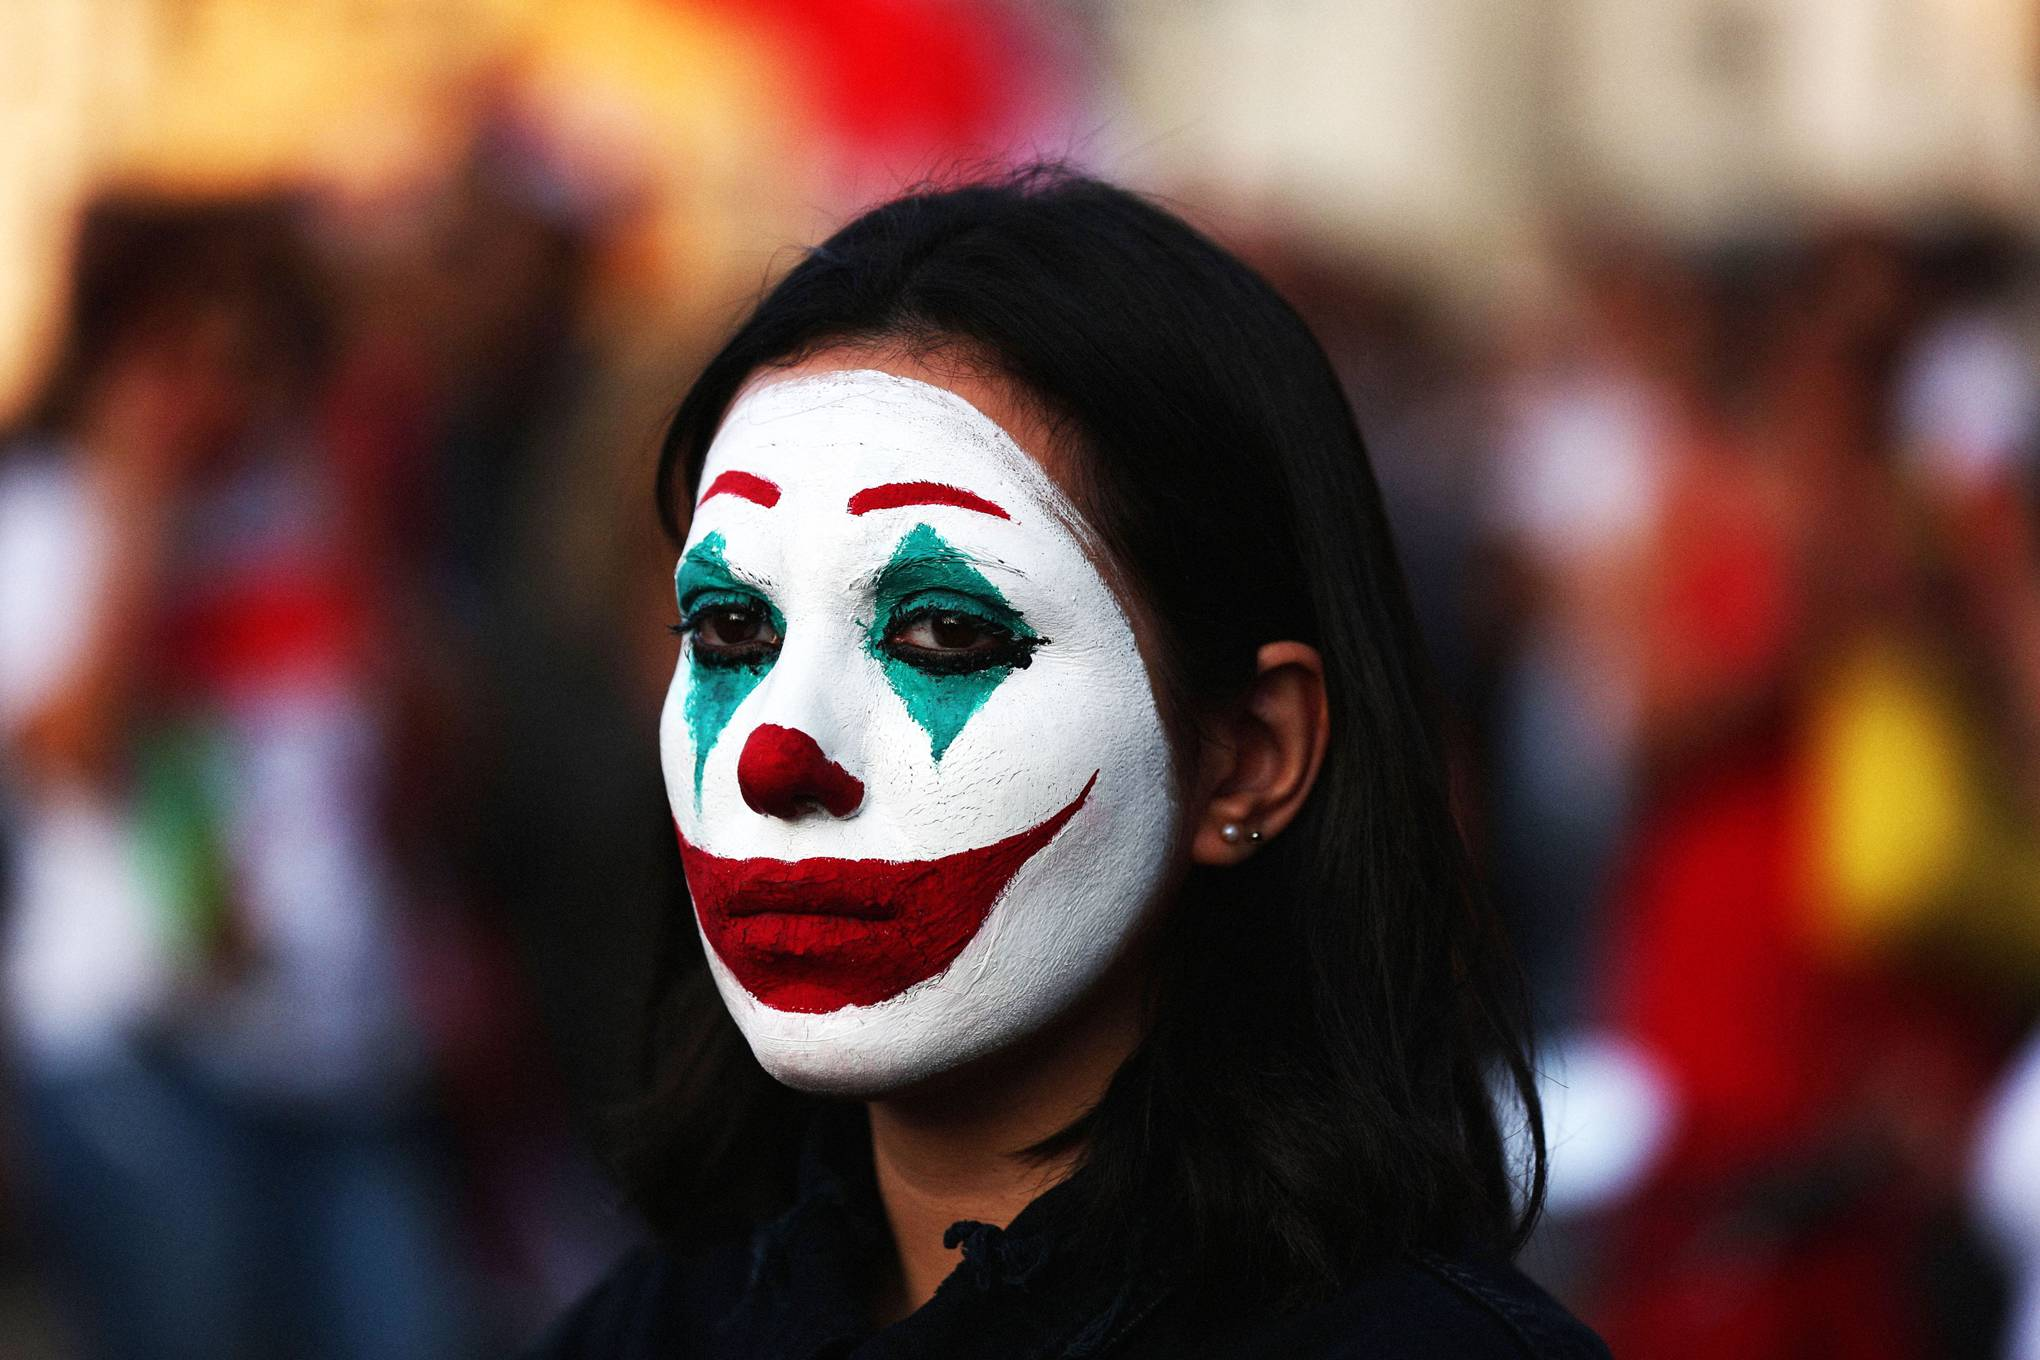 Why Joker masks are the perfect political protest symbol